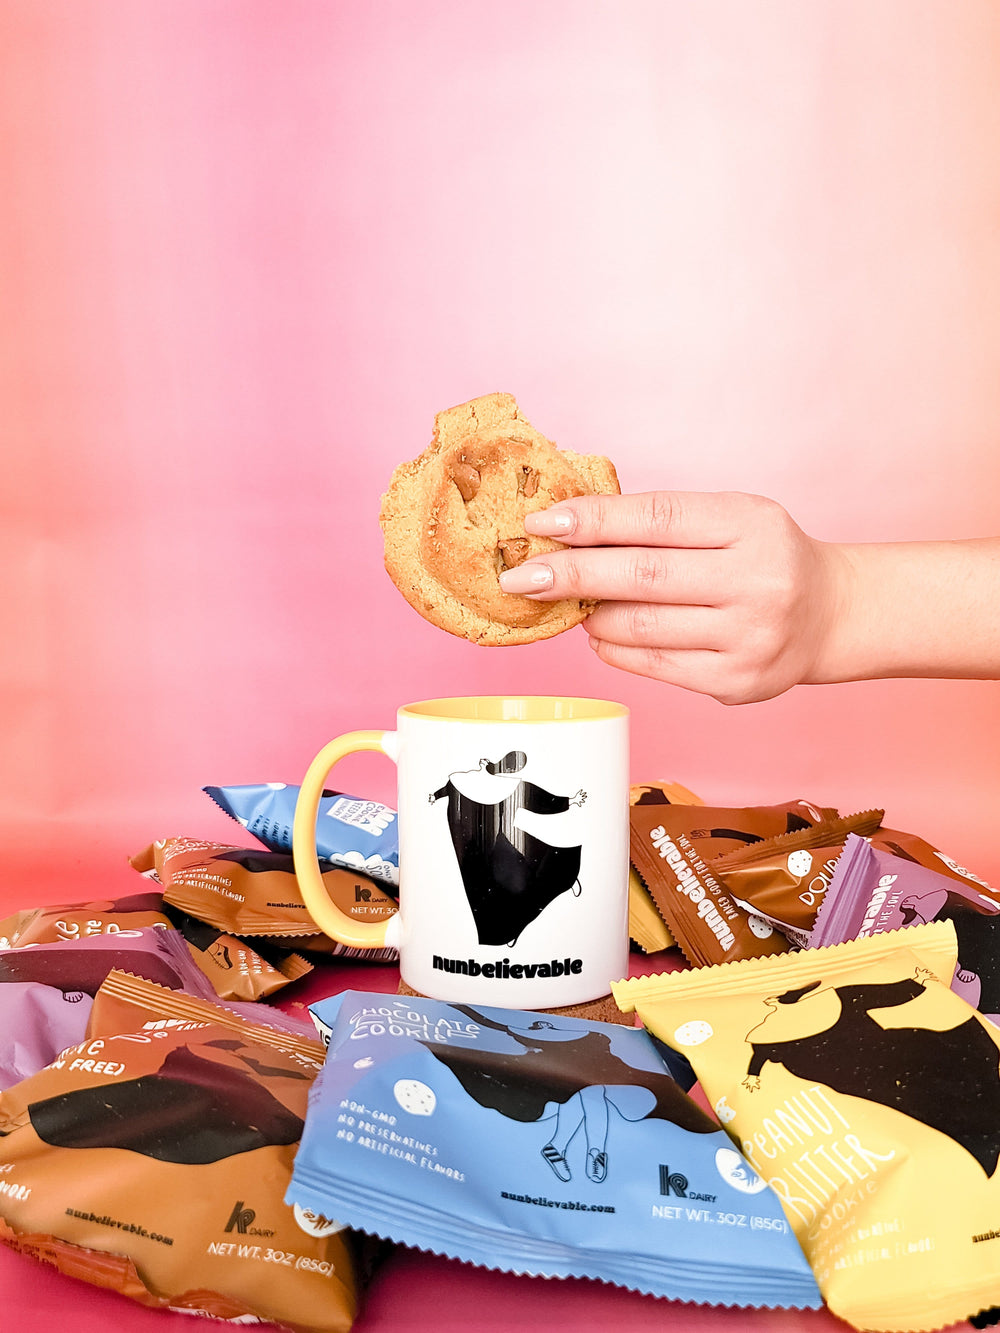 Nunbelieveable 11 Oz Ceramic Mug - Make Cheat Day Feel Less Sinful